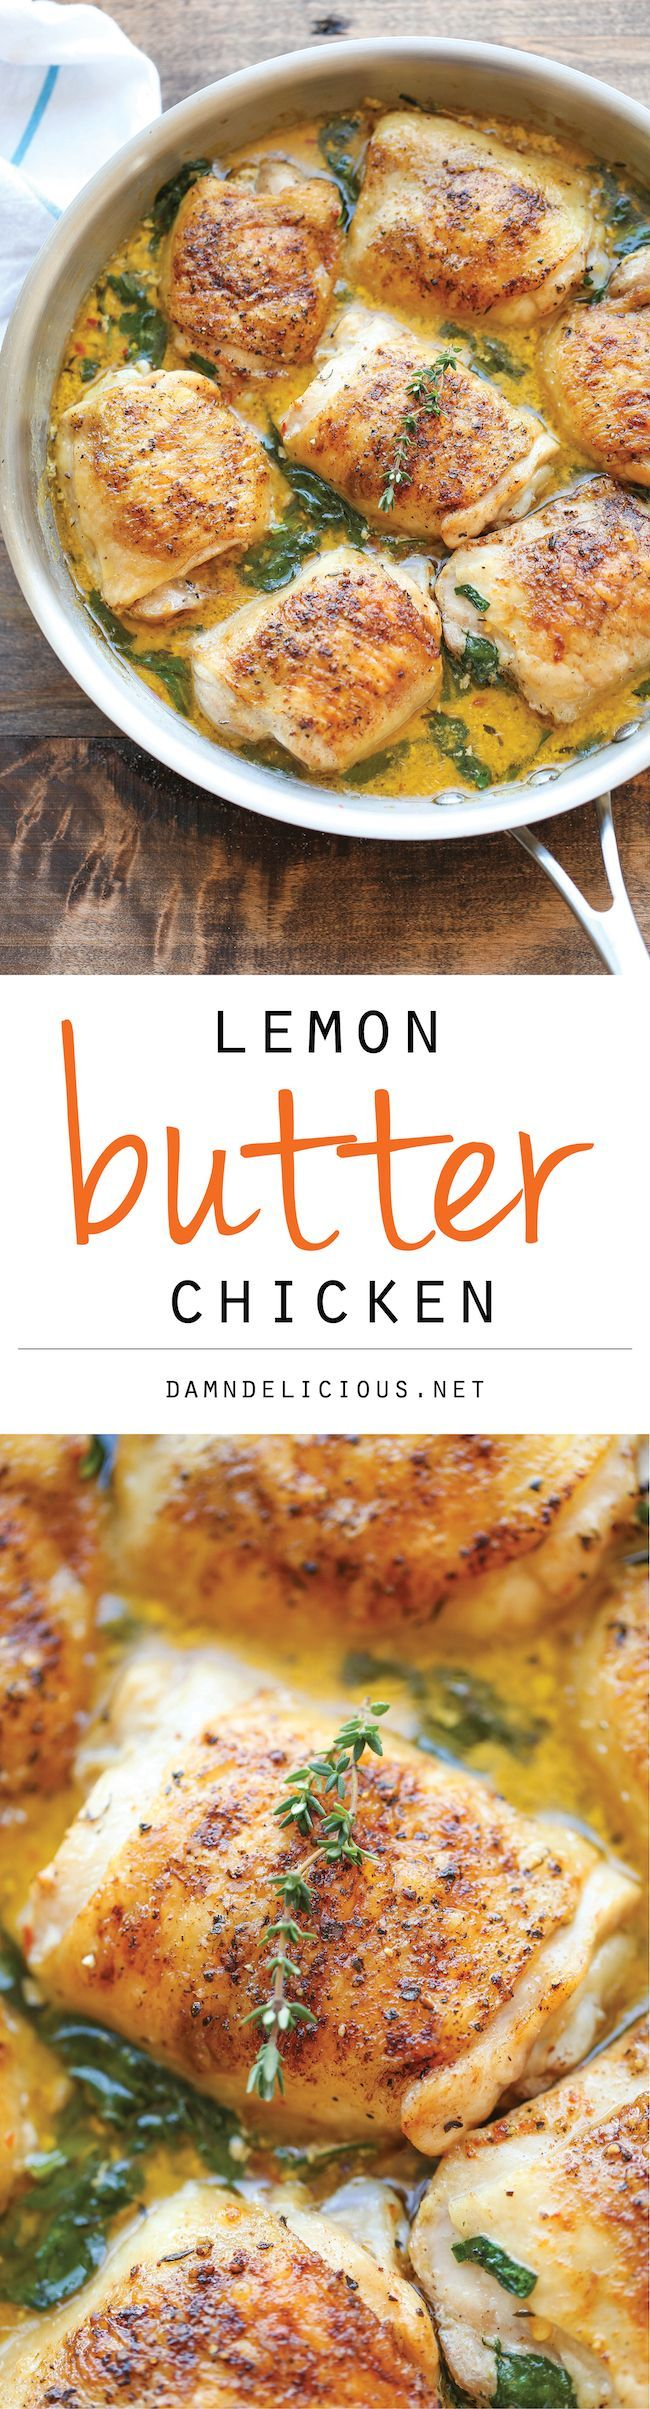 Lemon Butter Chicken Recipe